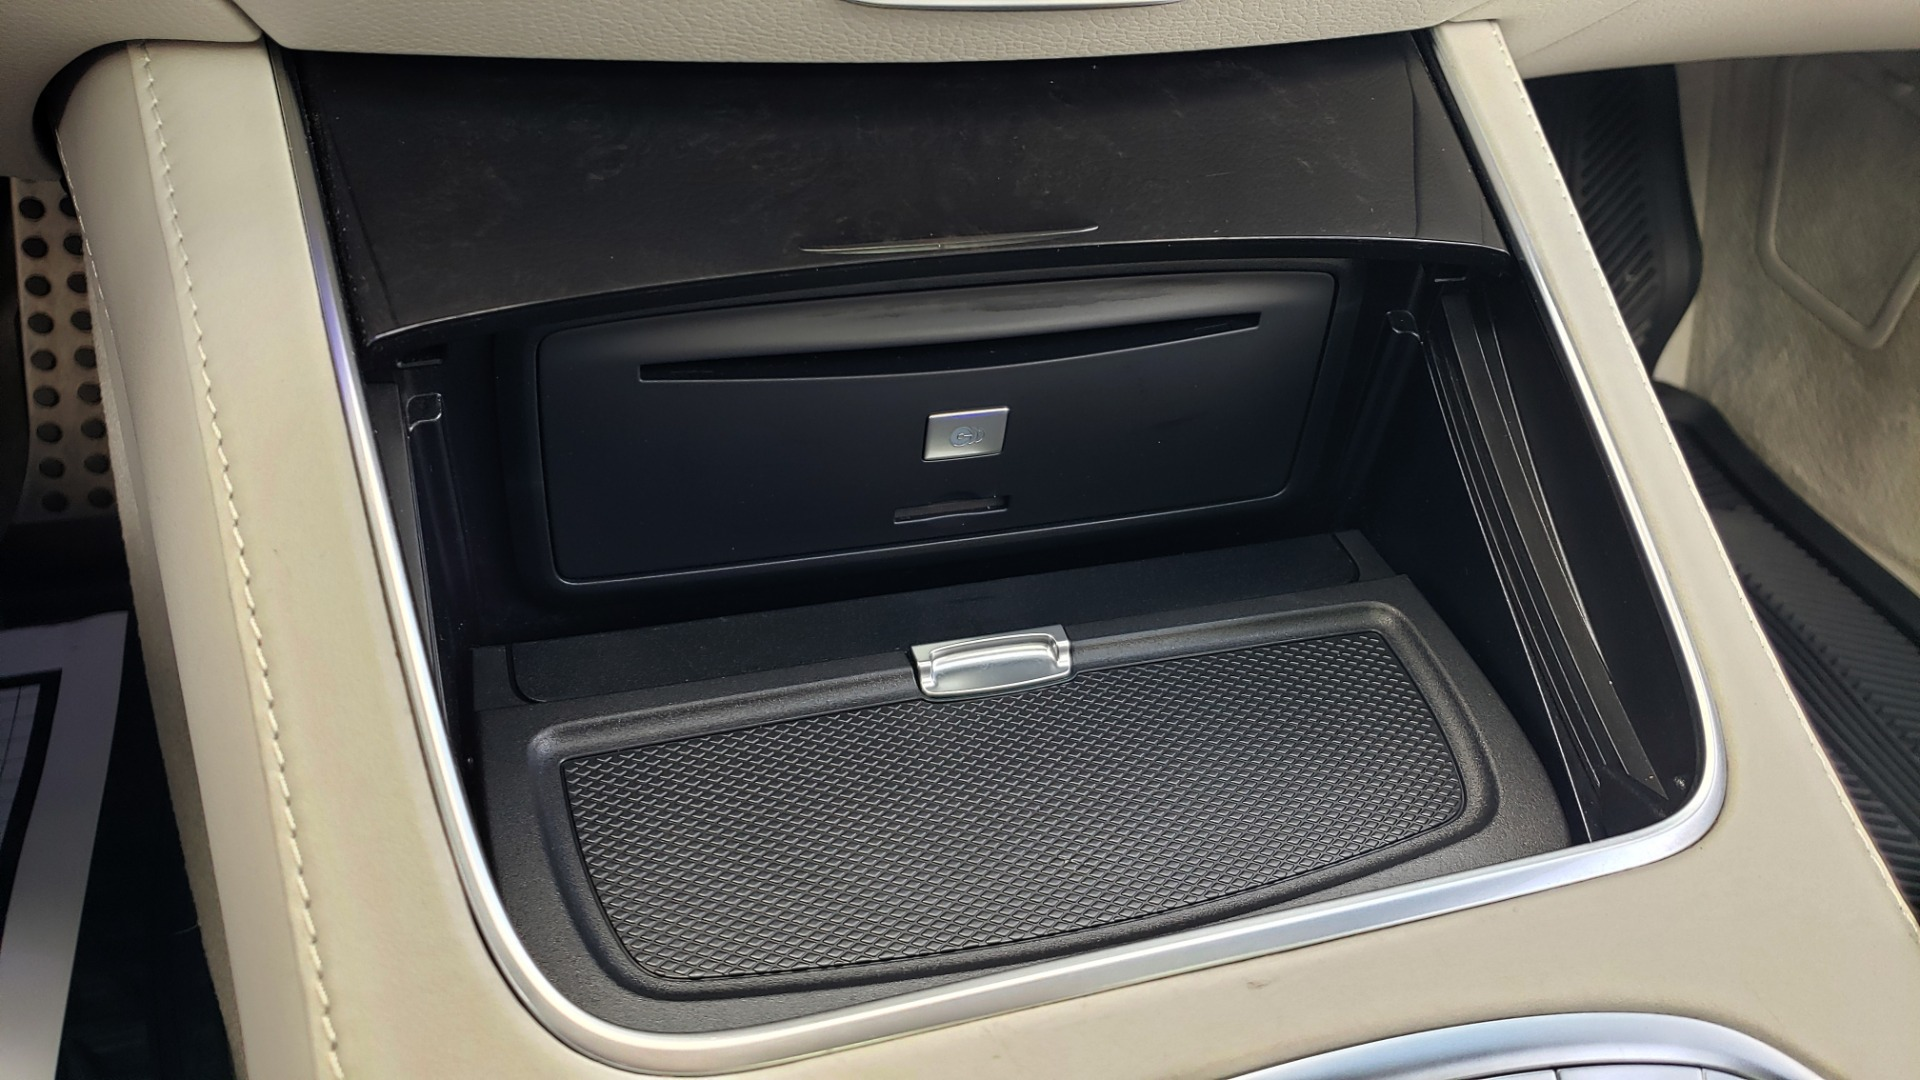 Used 2015 Mercedes-Benz S-CLASS S 550 PREMIUM / SPORT / WARMTH&COMFORT / DRVR ASST / SRND VIEW for sale Sold at Formula Imports in Charlotte NC 28227 54